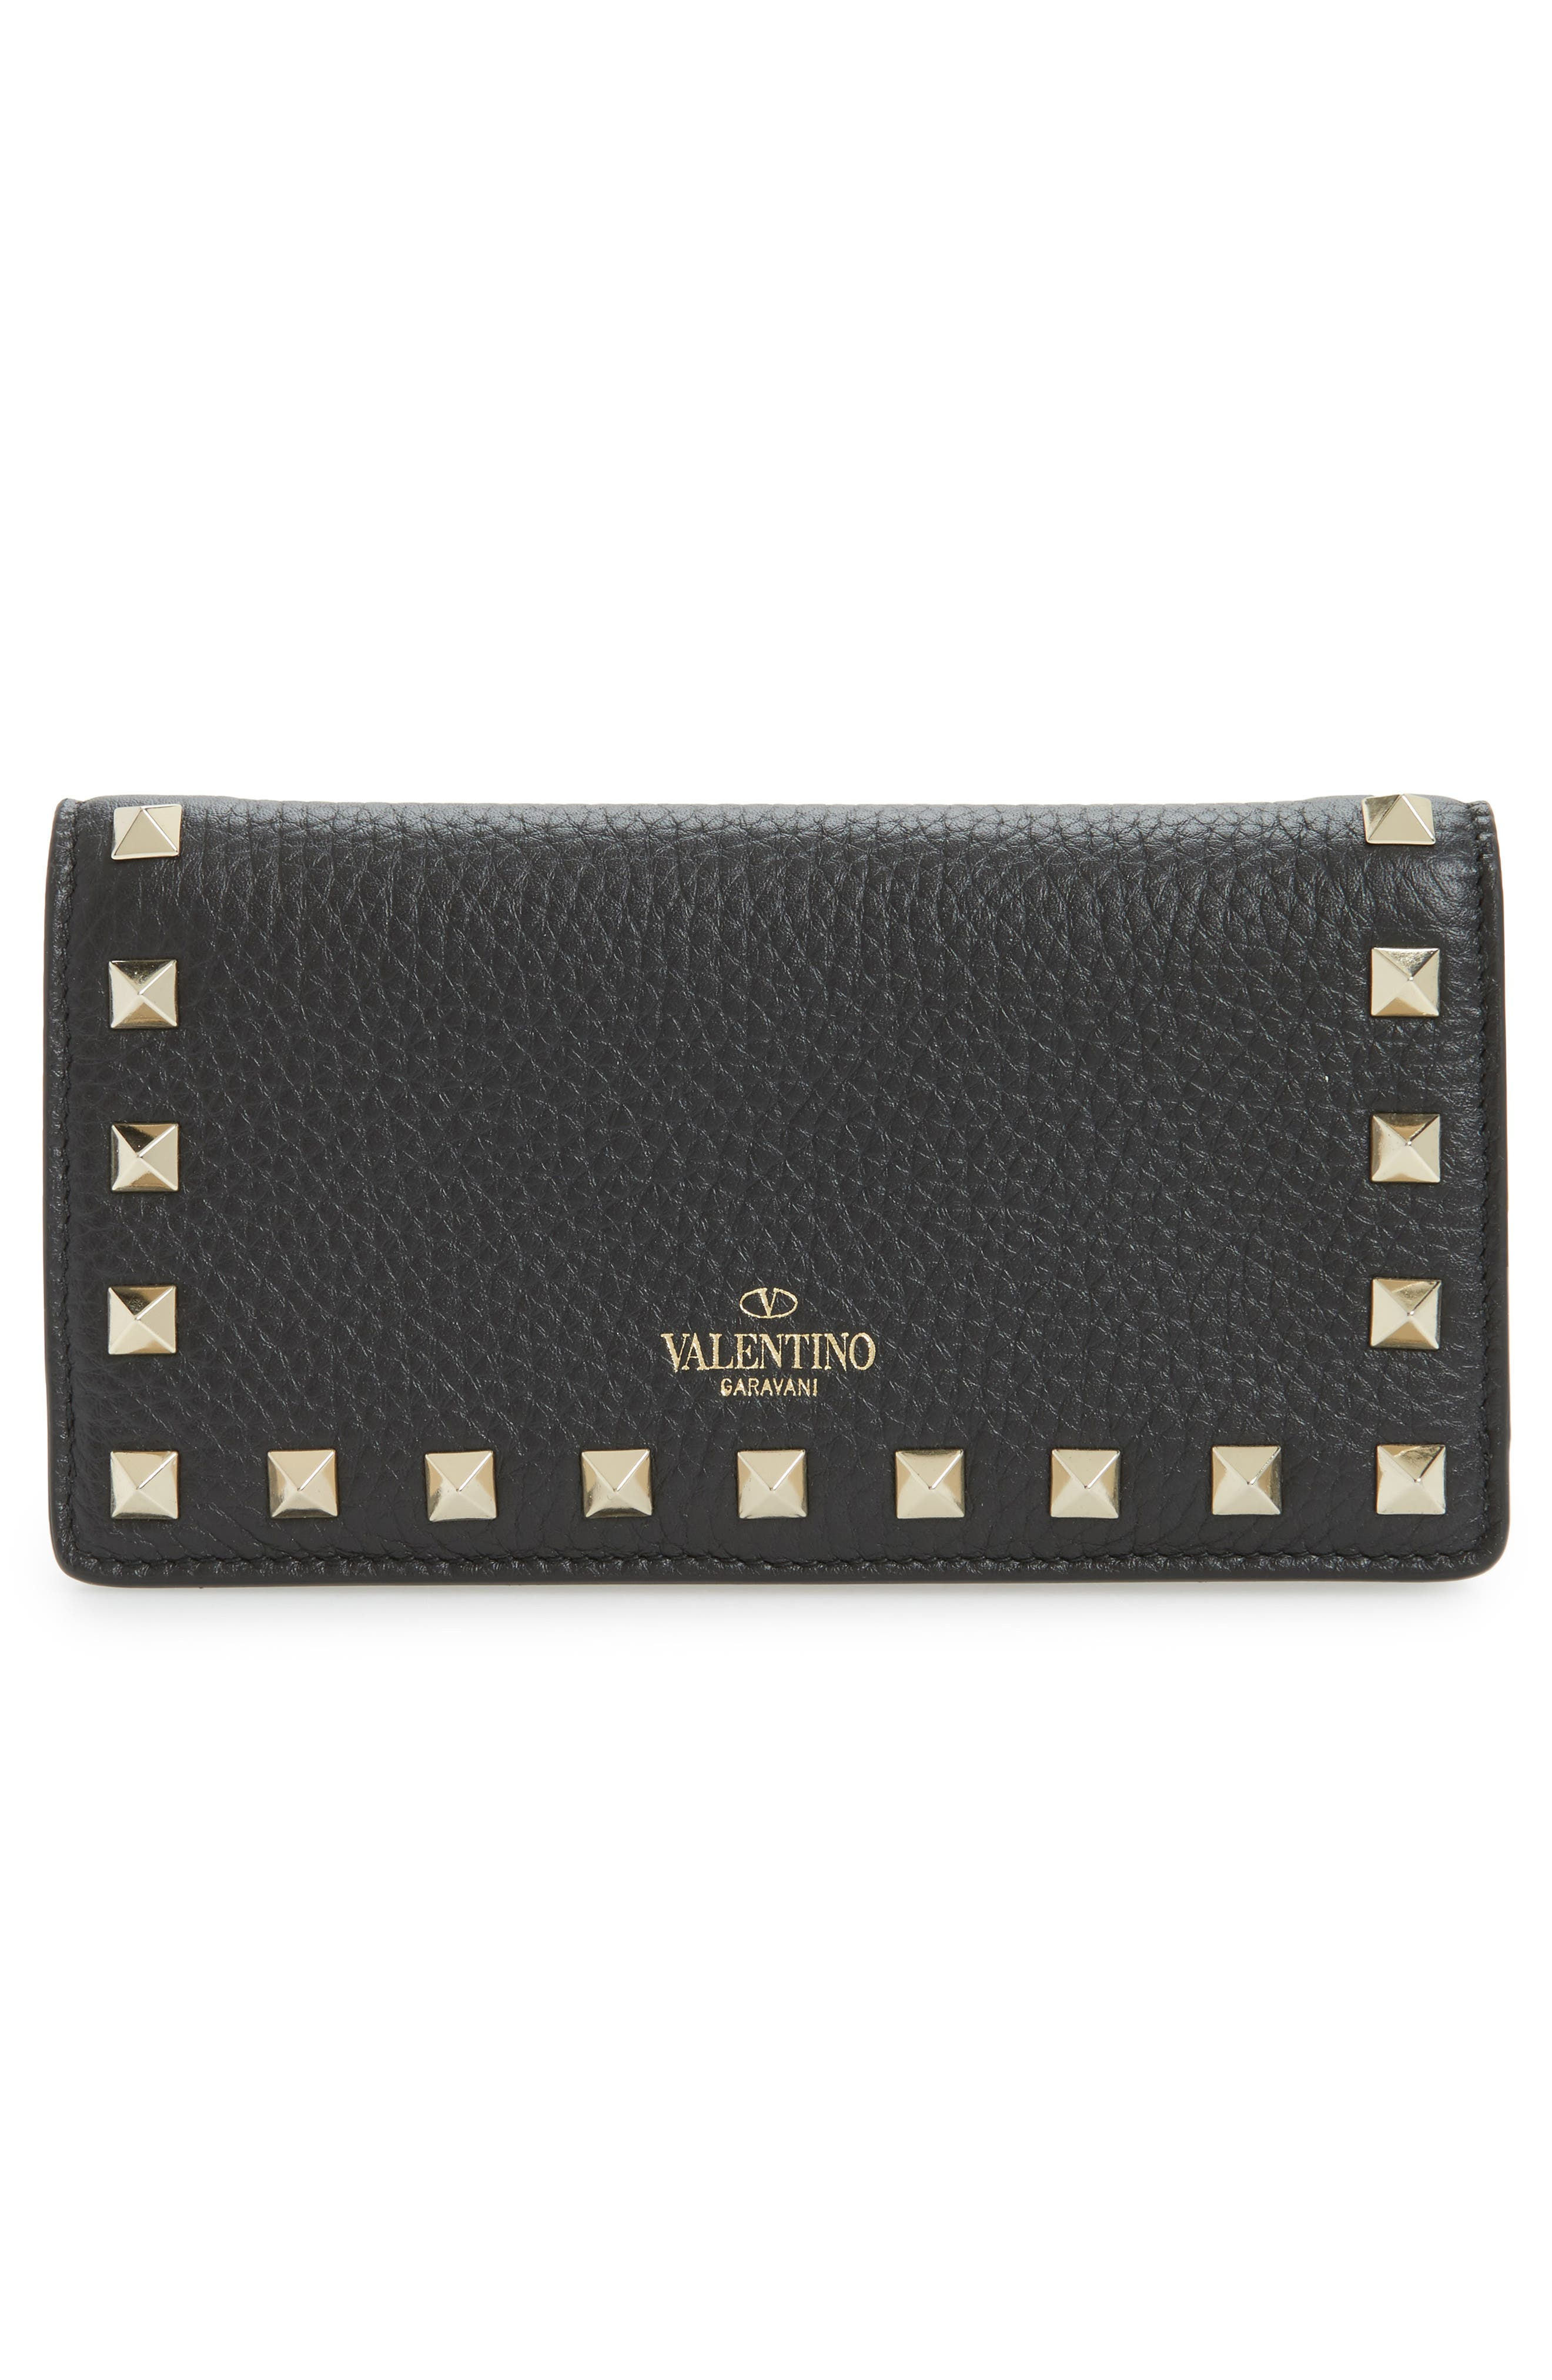 Rockstud Calfskin Leather Wallet,                             Alternate thumbnail 4, color,                             Nero